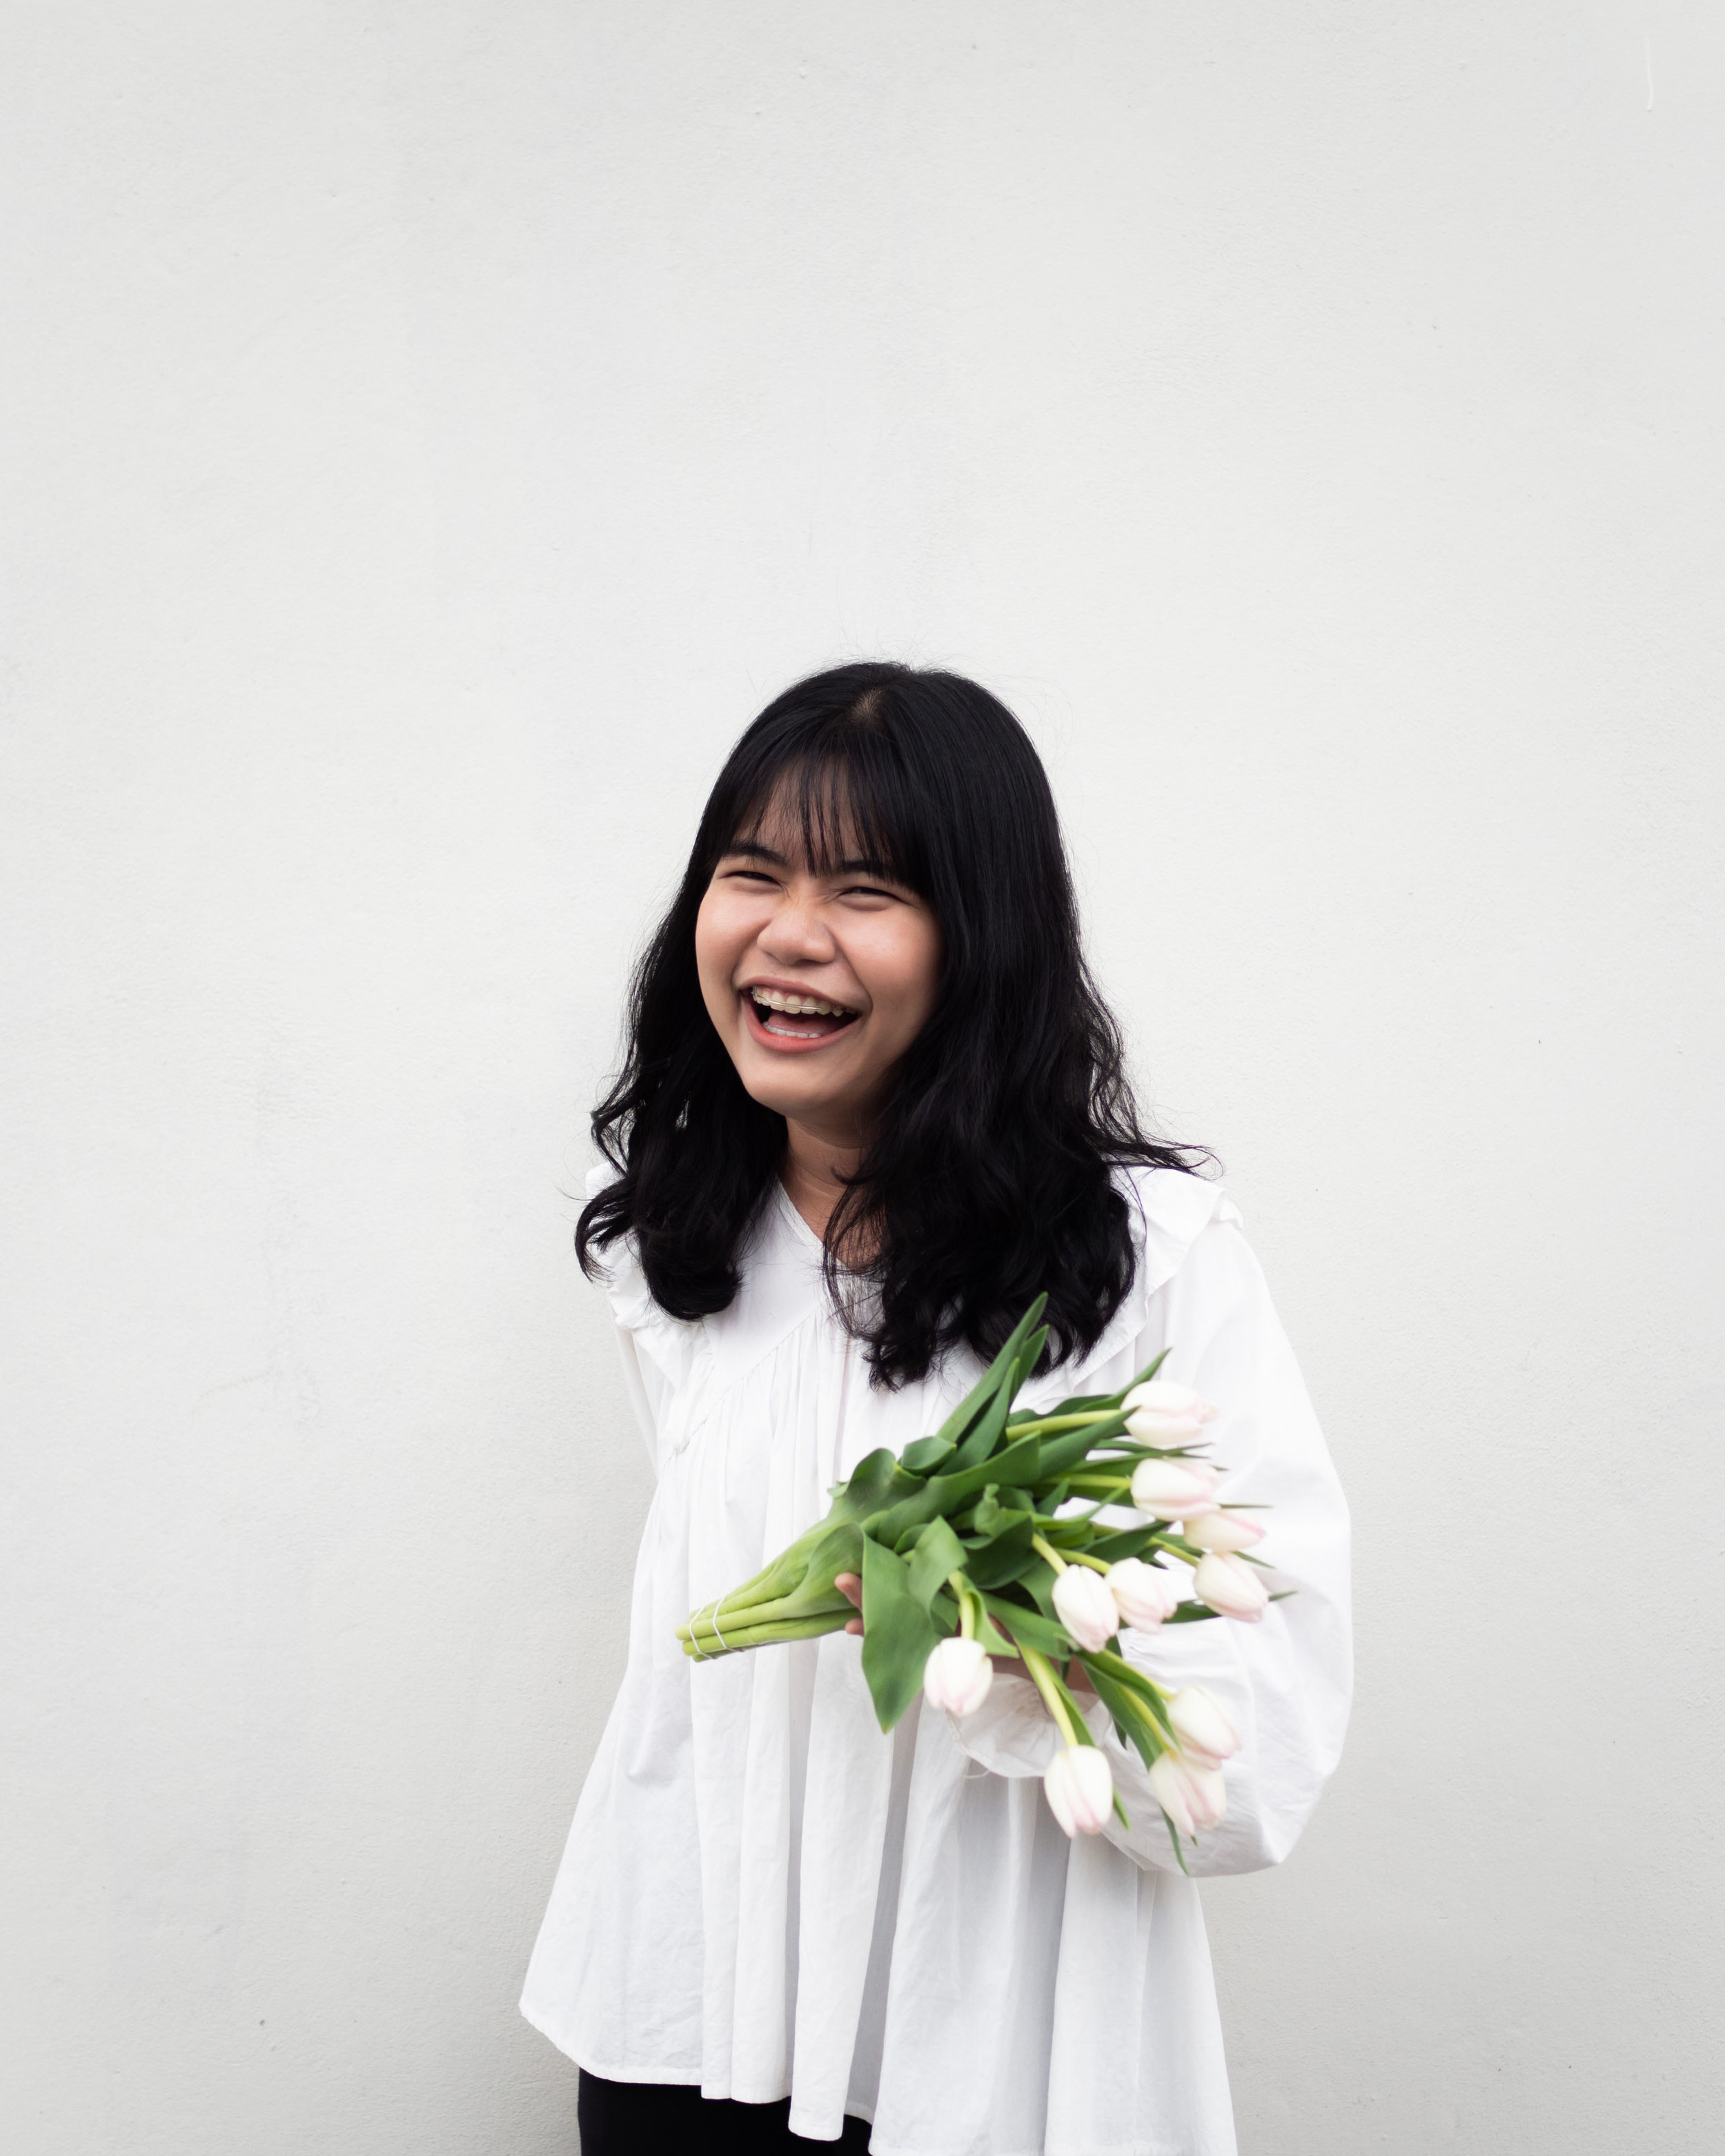 Chu graduated B.A. (Home Economics) from Suan Dusit School of Culinary Arts after a long-period internship at PHKA back in 2016. She has since continued to work at the studio, being one of our own, and rising to the intermediate level. Floral horticulture, plant materials purchasing and handling, floral craft, and floral arrangement are among the knowledge she could well contribute to the team.Chutima (Chu) Tangsinchai  chutima@phkastudio.com